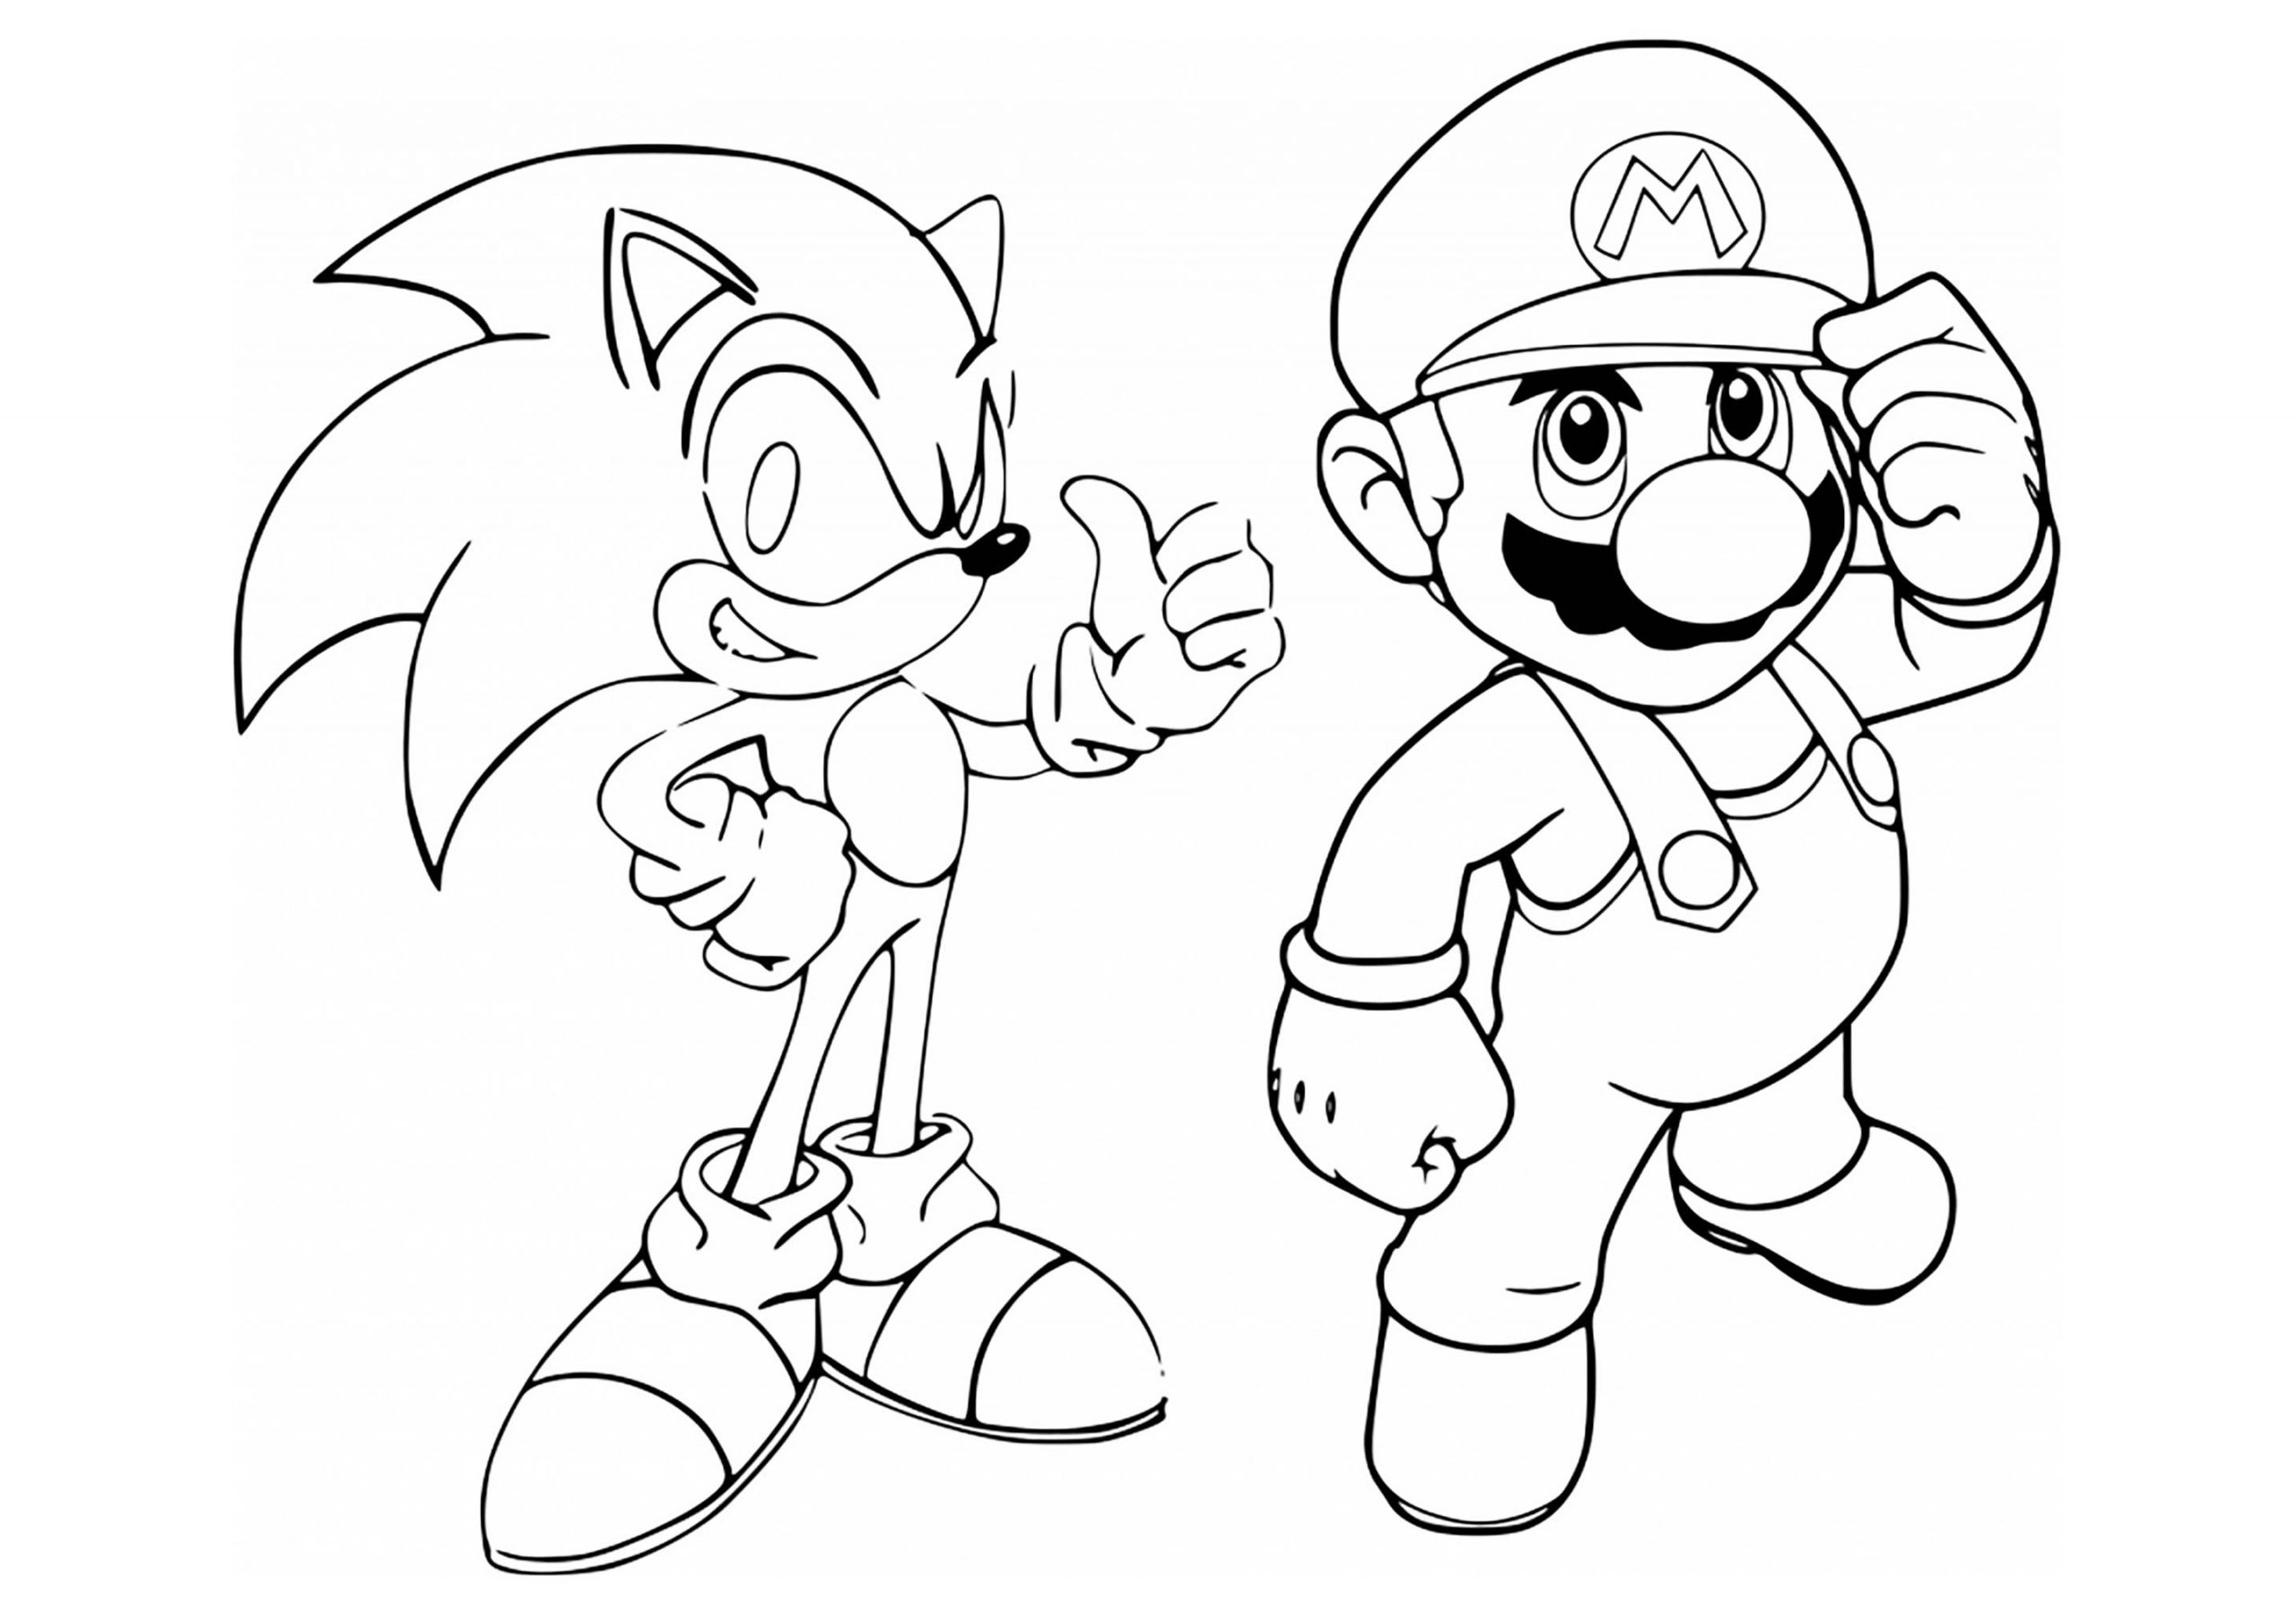 Mario and Sonic Hedgehog Coloring Page